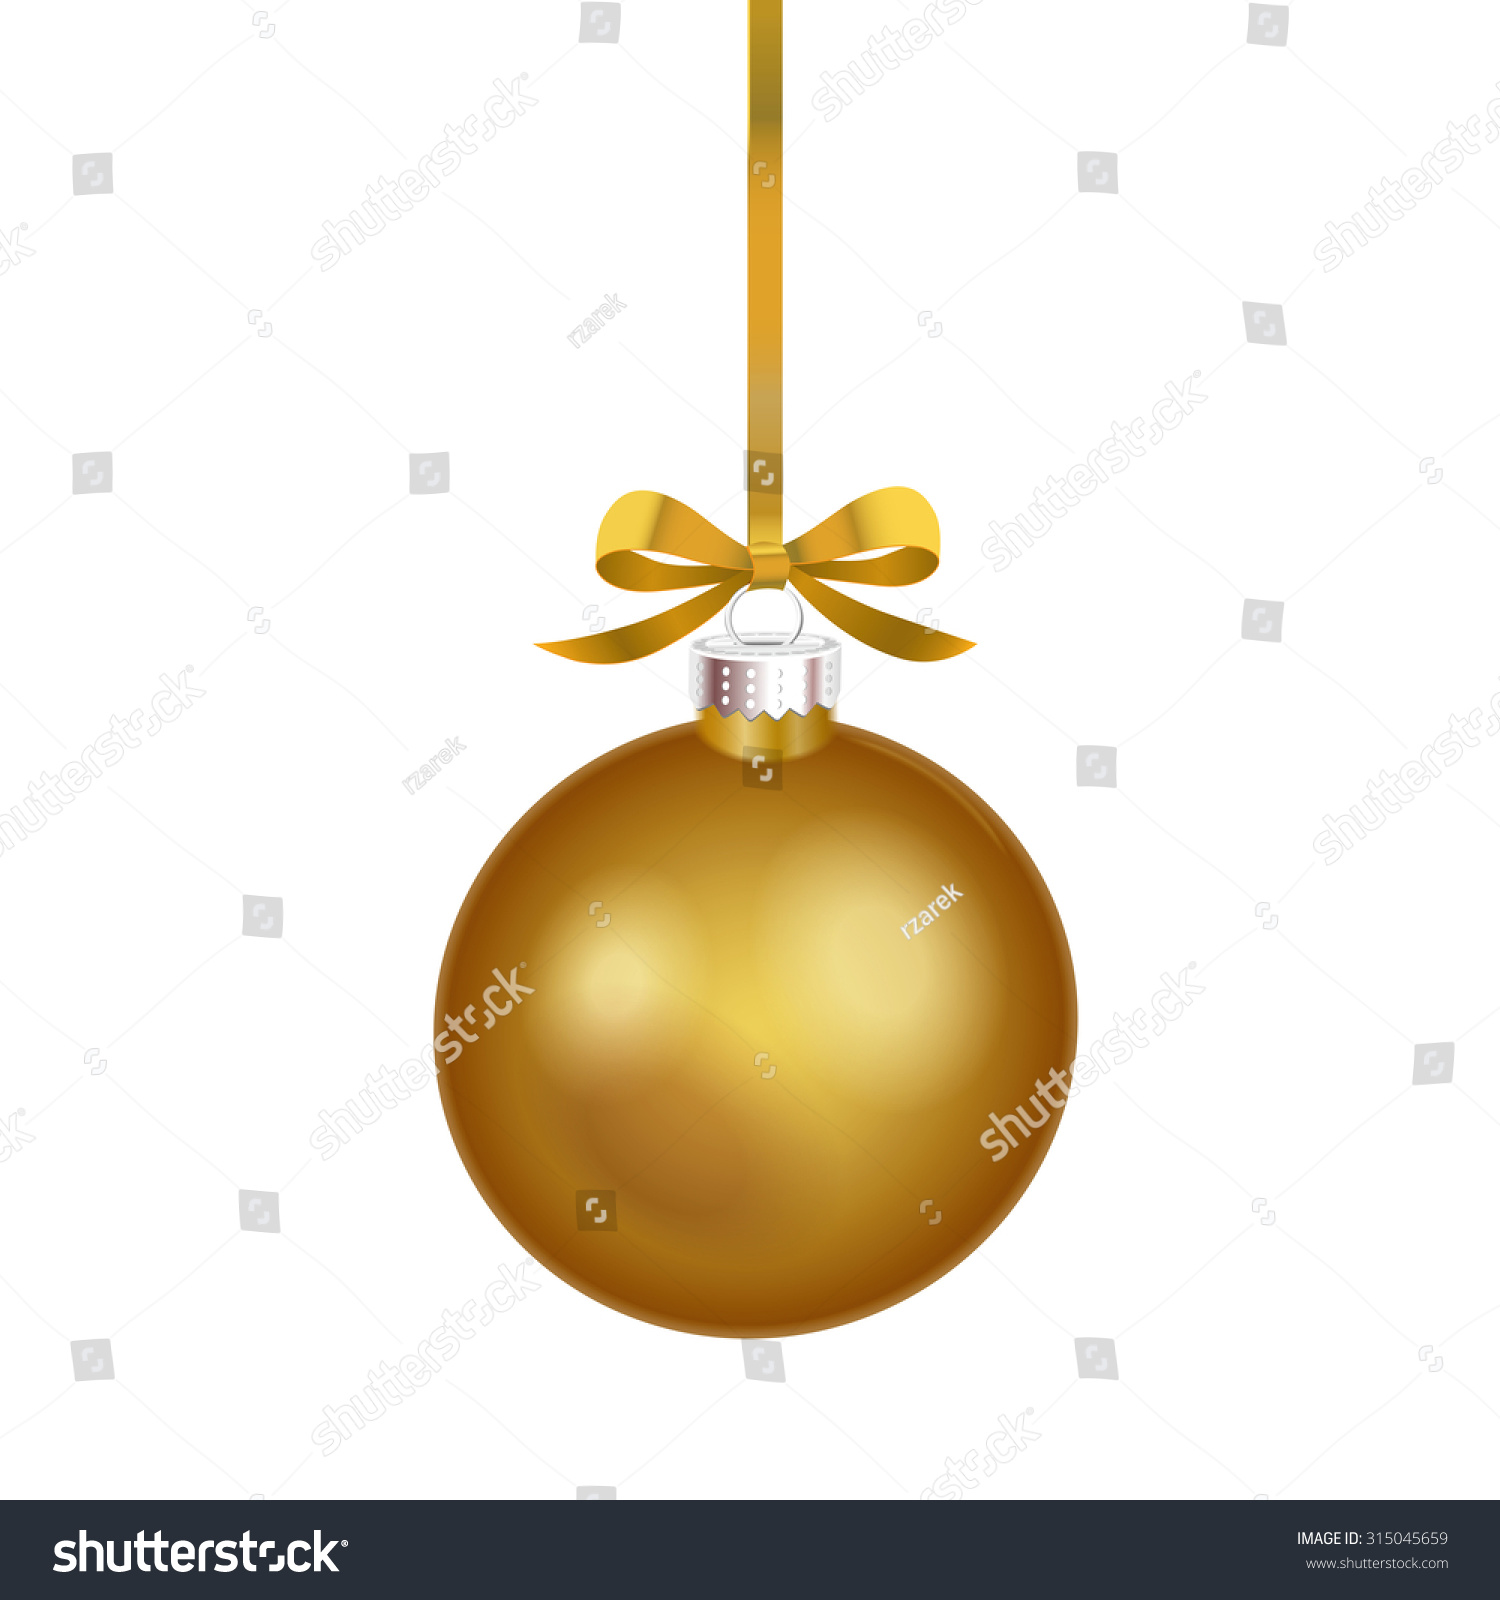 Christmas Ornament With Gold Ribbon Vector Illustration